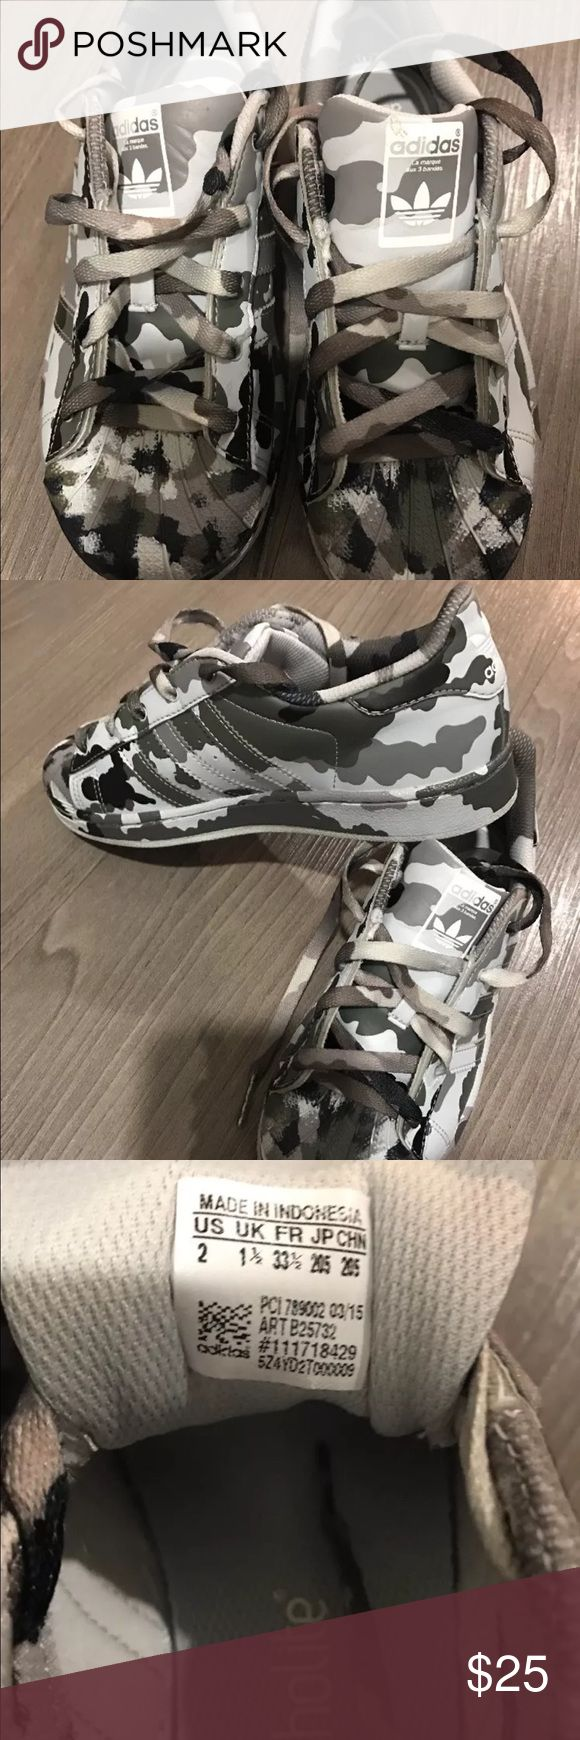 Boys adidas camouflage sneakers limited edition This is a boys pair of adidas theyr new no box my son wore them for an hour theyr not his size these are size 2 big kids Adidas Shoes Sneakers